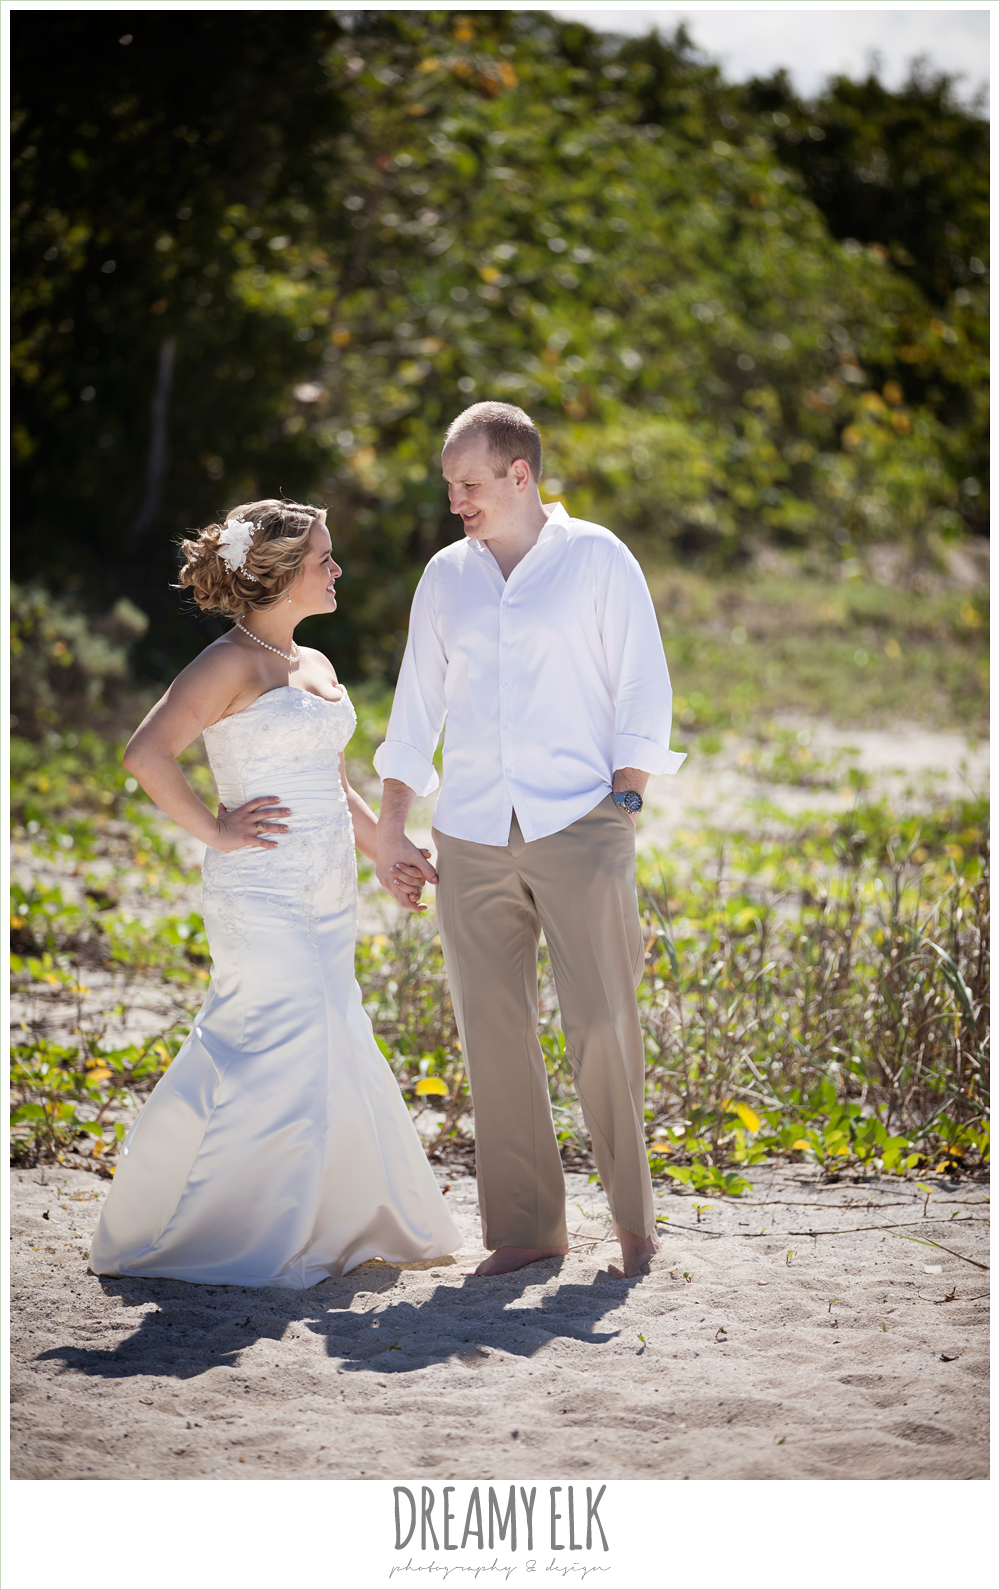 bride and groom on the beach, beach wedding hair, fit and flare wedding dress, groom in white shirt and khaki pants, destination wedding, cozumel {dreamy elk photography and design} photo